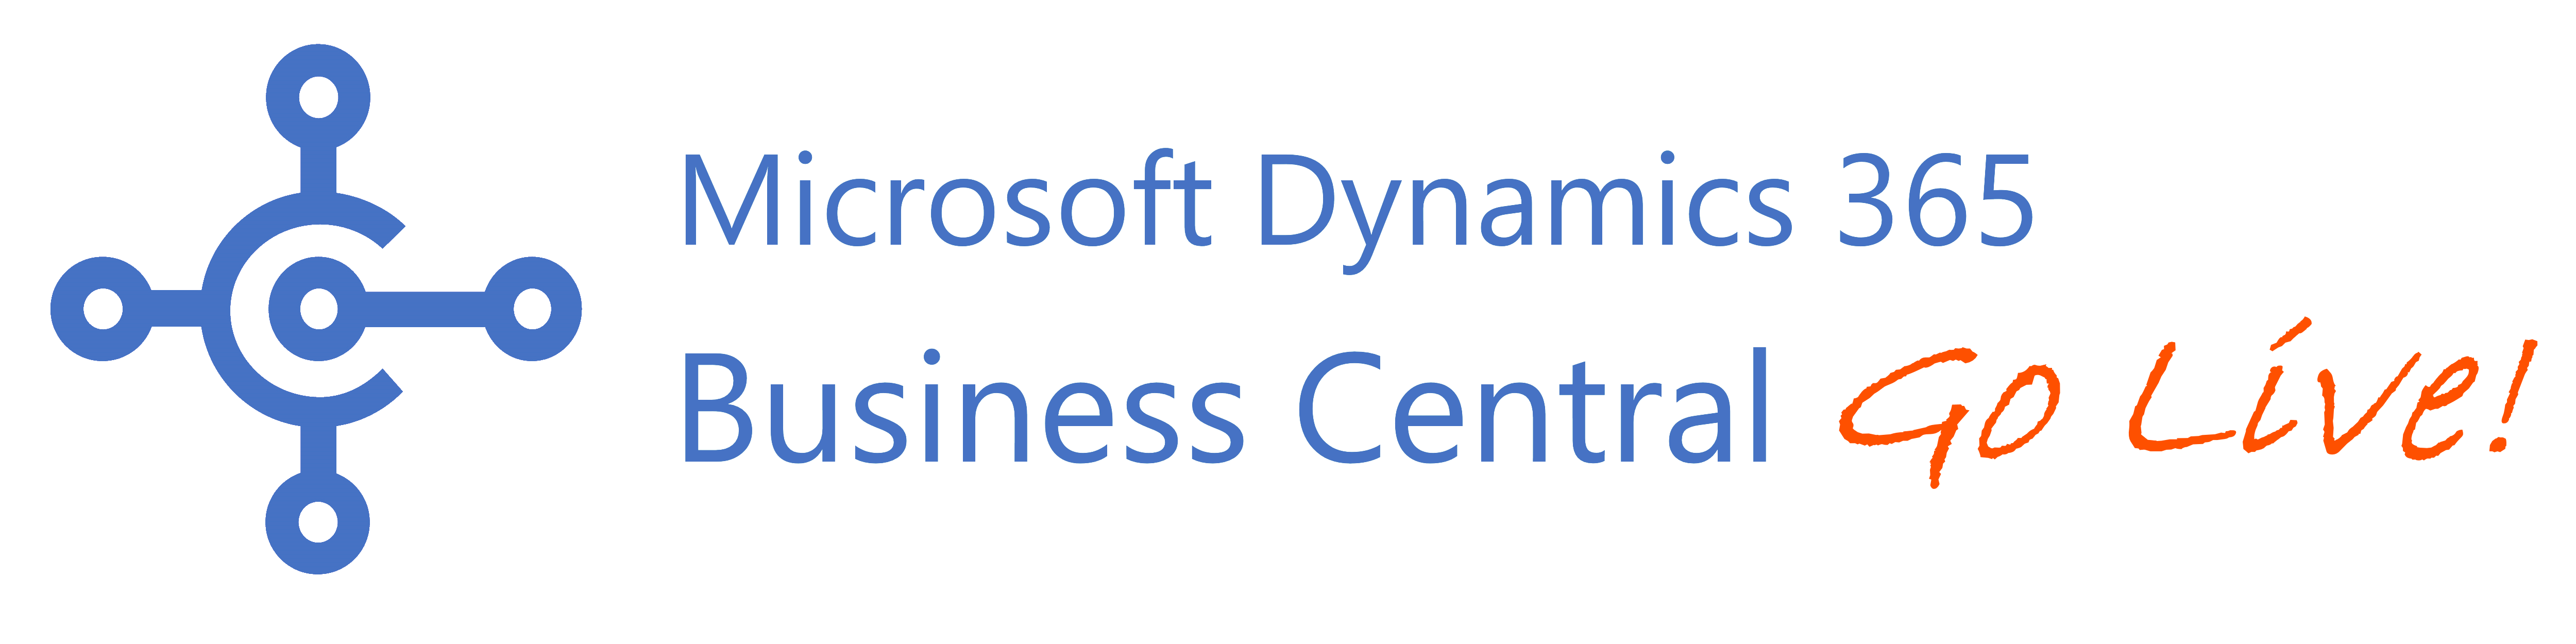 Microsoft Dynamics 365 Business Central Go Live